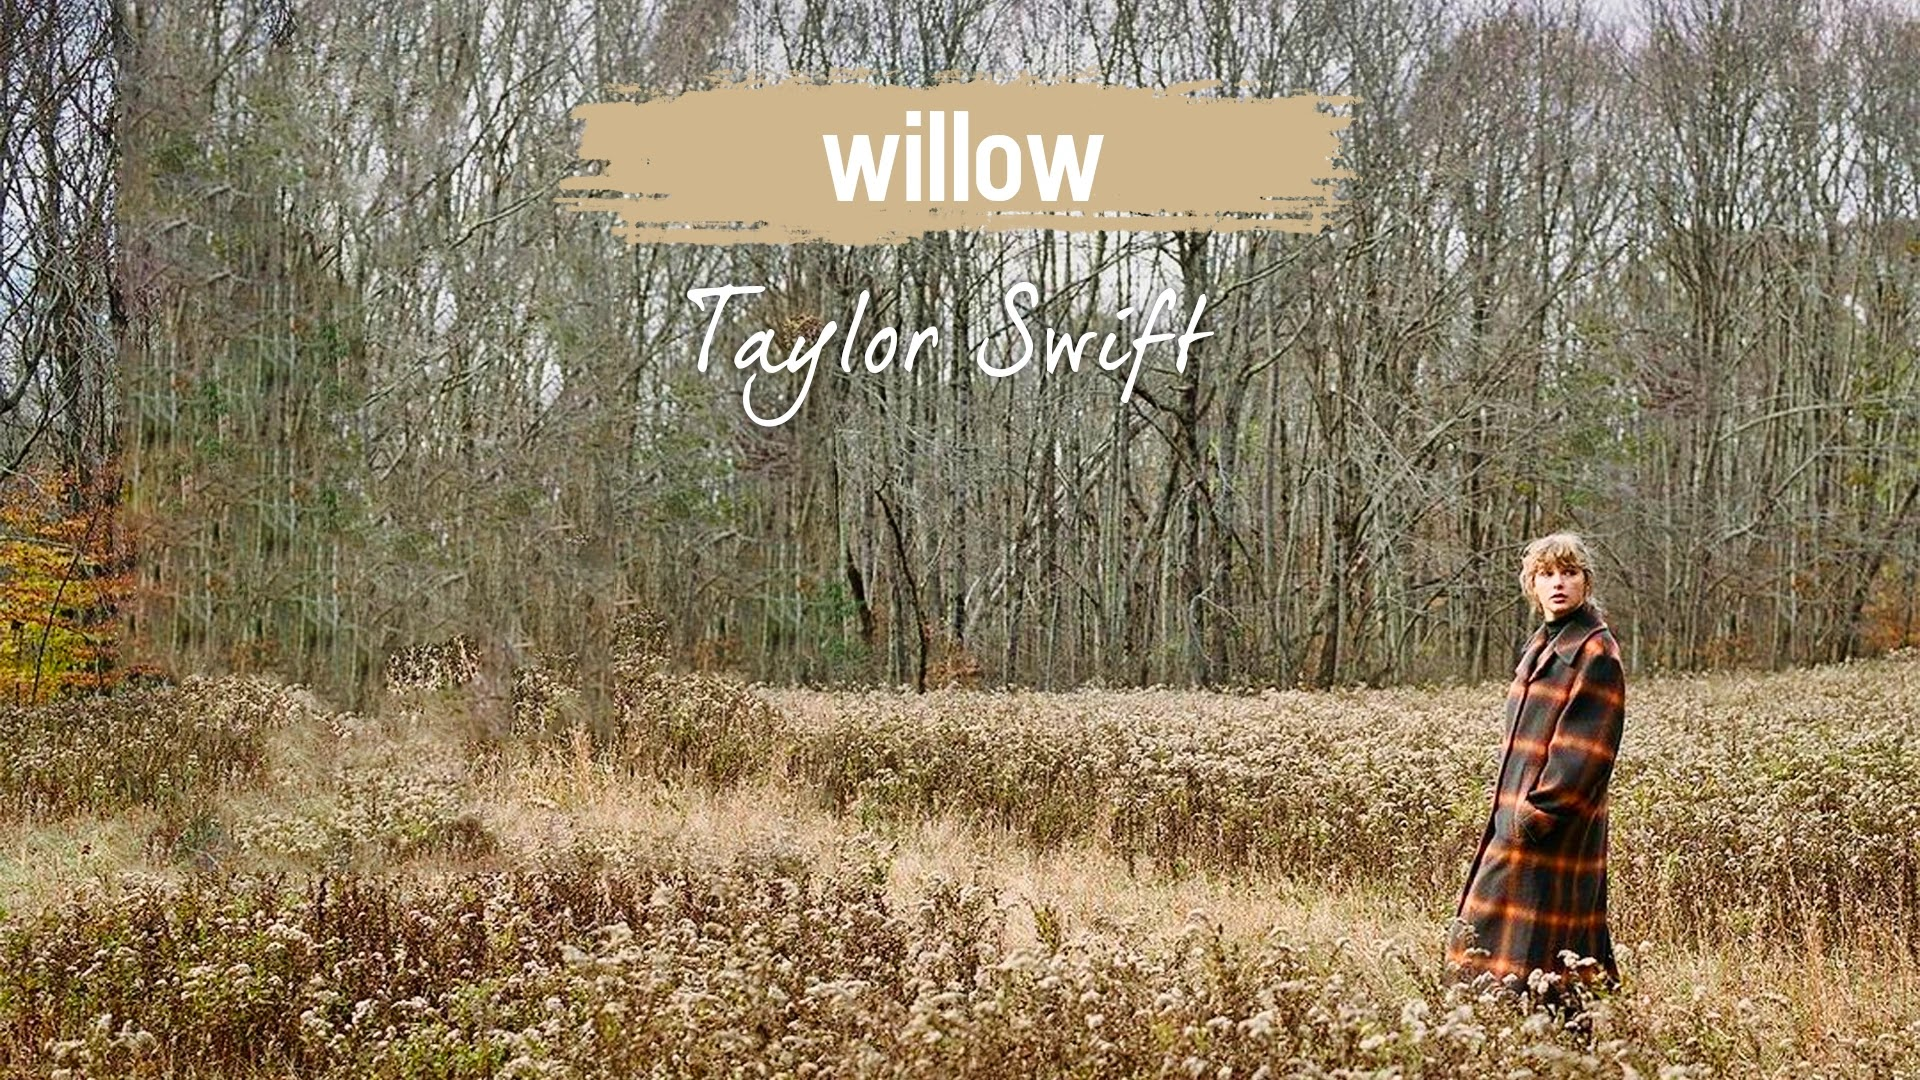 willow - Taylor Swift